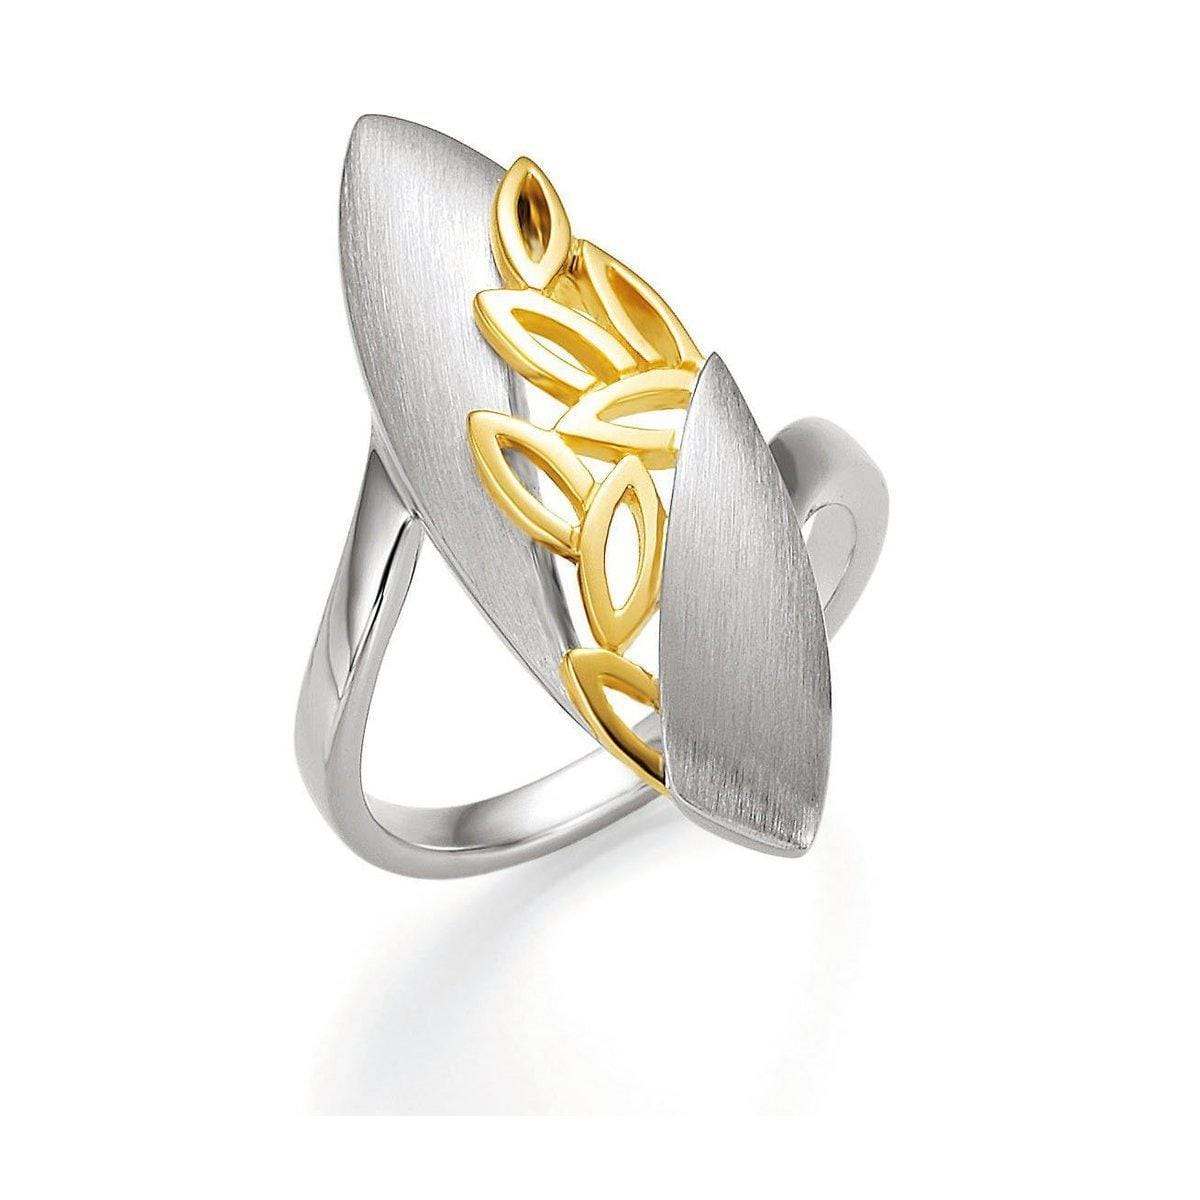 Yellow Gold Plated Sterling Silver Ring - 44/01399 - Breuning